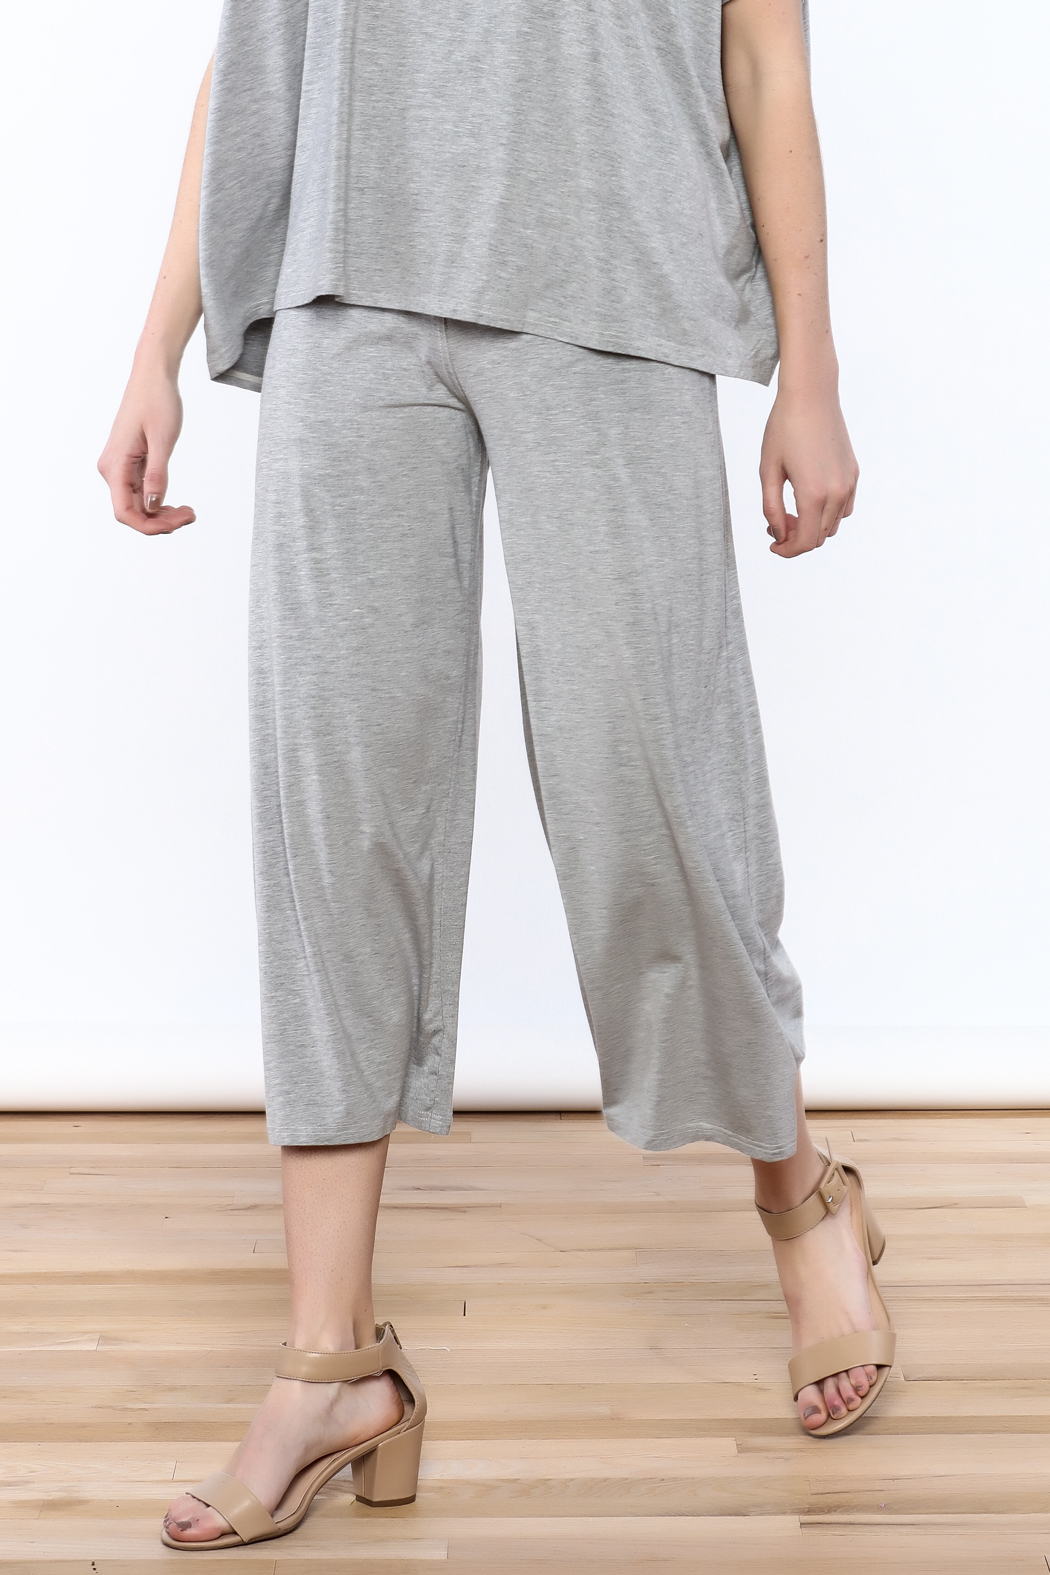 Heartstring Grey Banded Crop Pant - Main Image